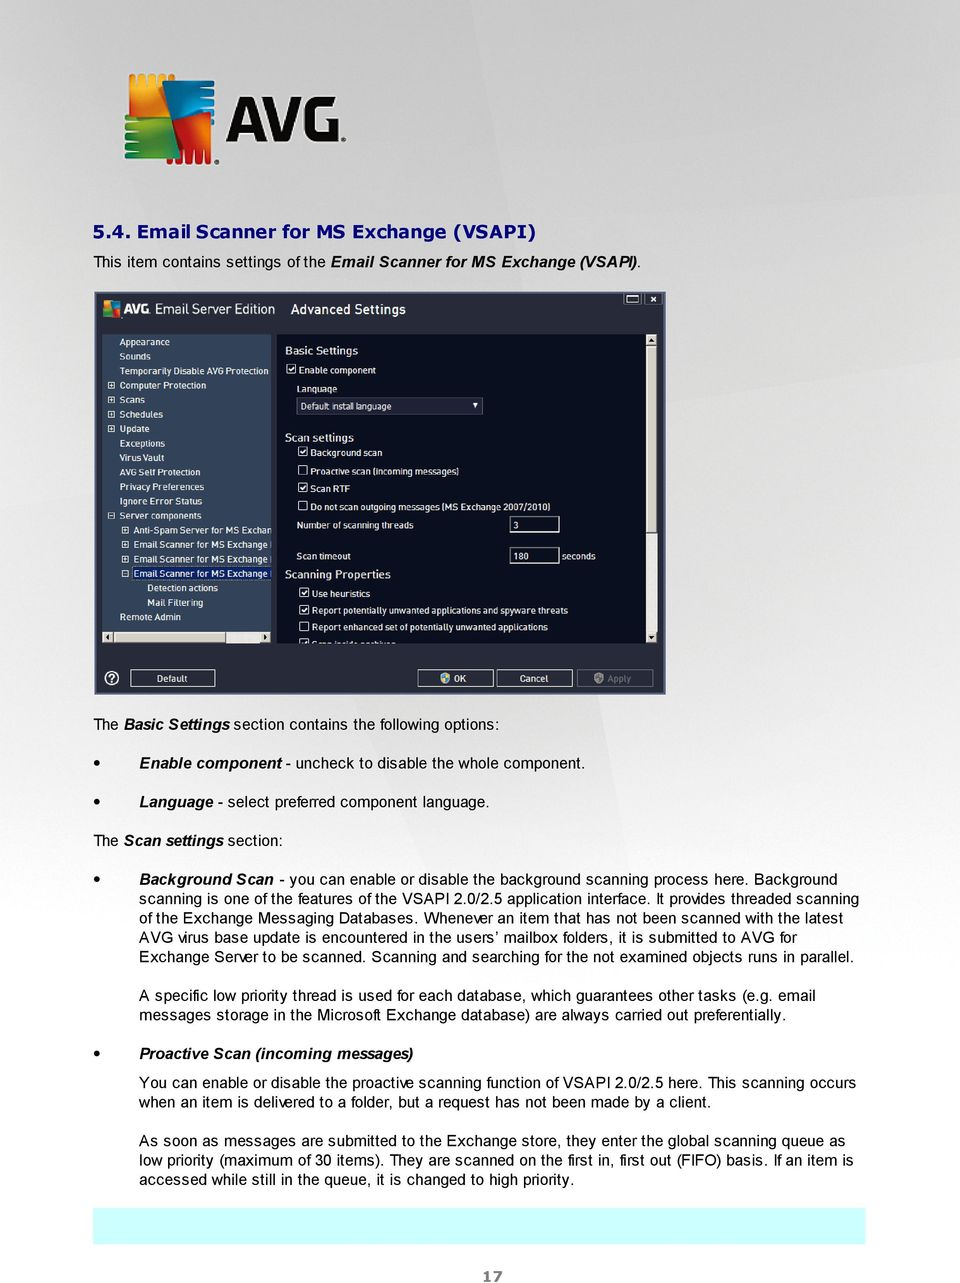 The Scan settings section: Background Scan - you can enable or disable the background scanning process here. Background scanning is one of the features of the VSAPI 2.0/2.5 application interface.